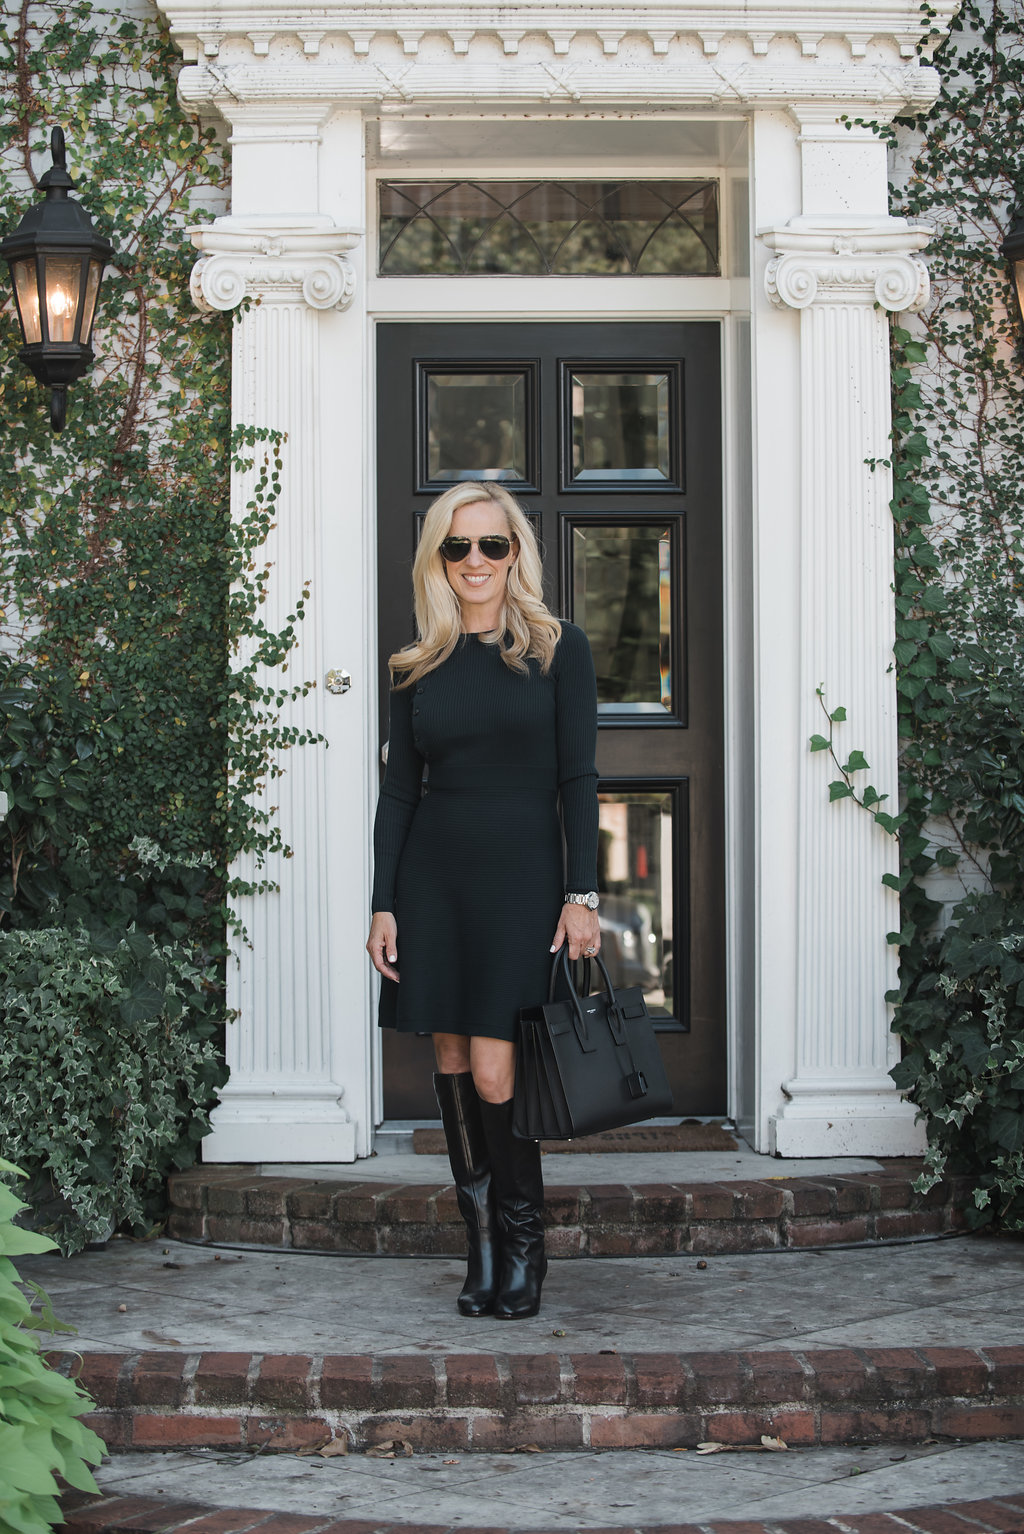 Alicia Wood, Dallas Lifestyle Expert, Dallas Lifestyle Blogger, Dallas Fashion Blogger, Navy Sweater Dress